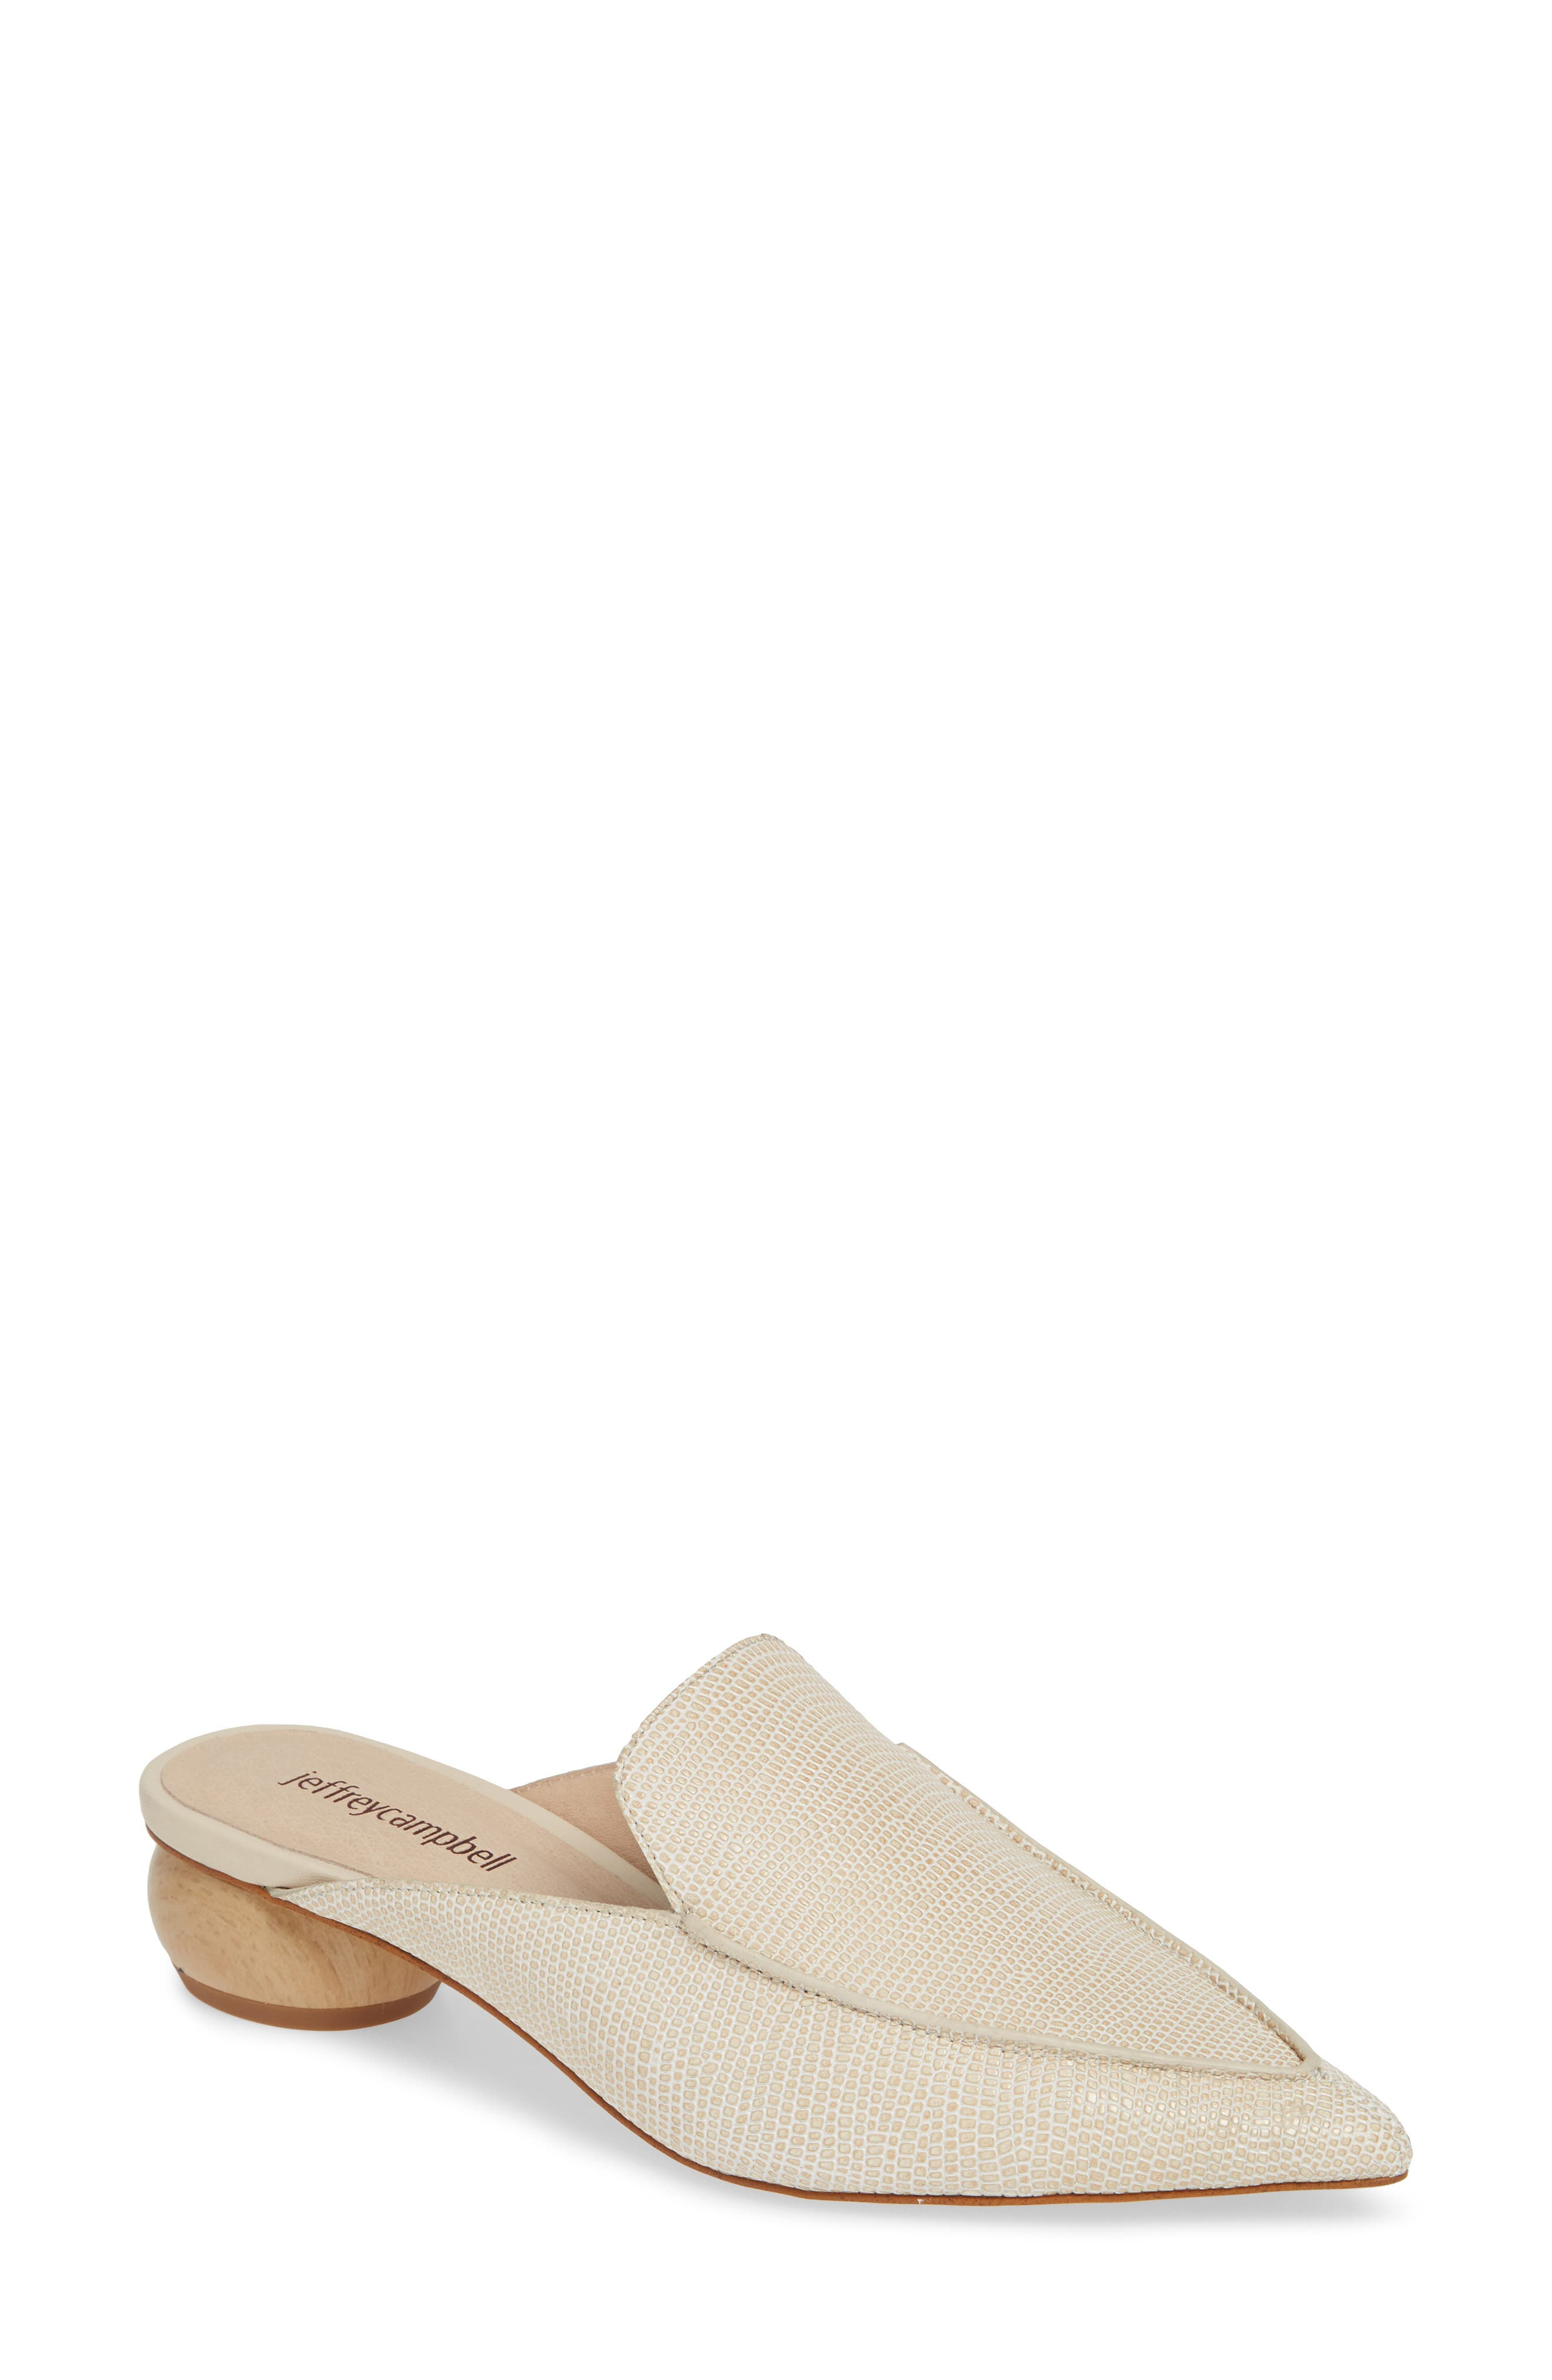 JEFFREY CAMPBELL, Vionit Lizard Embossed Loafer Mule, Main thumbnail 1, color, BEIGE LIZARD PRINT